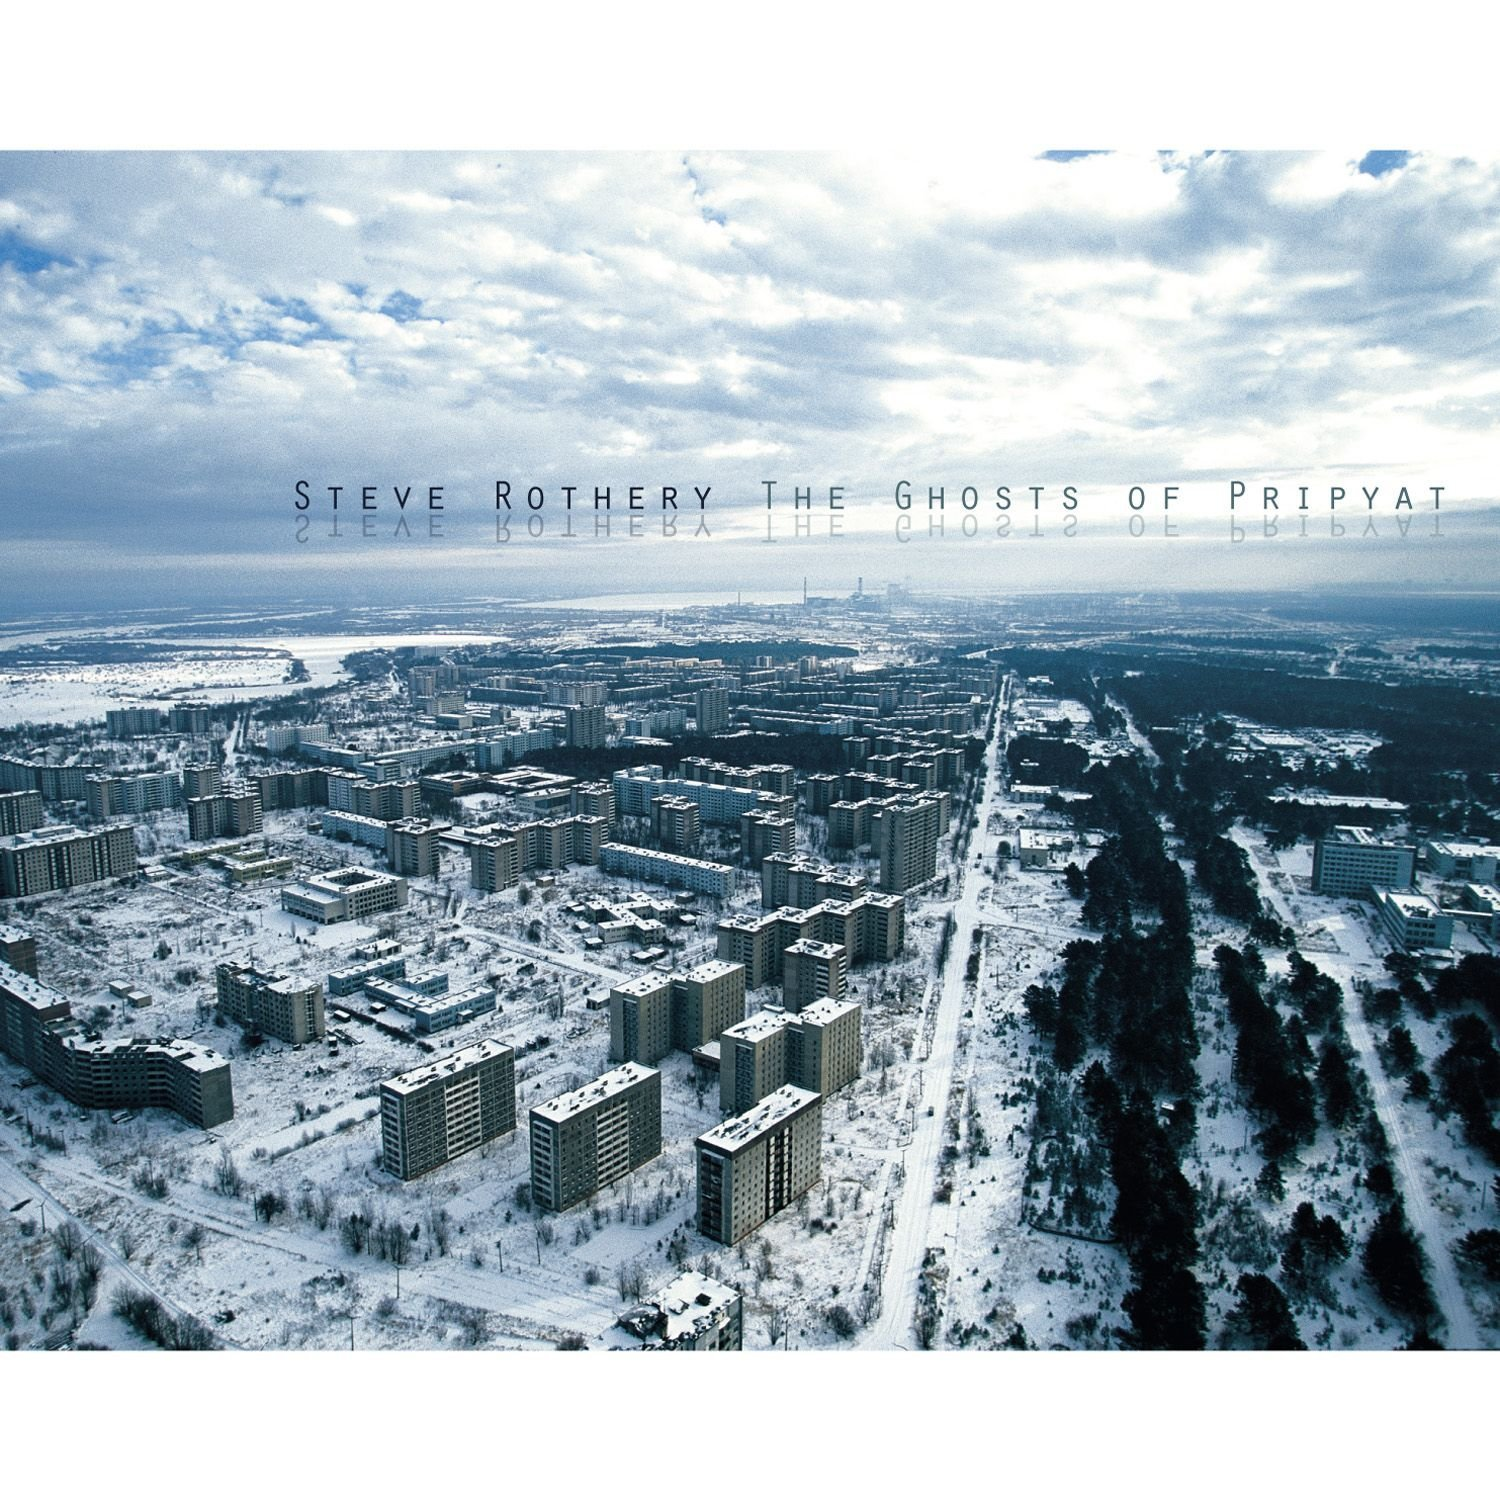 The Ghosts of Pripyat (Ed. Lda)